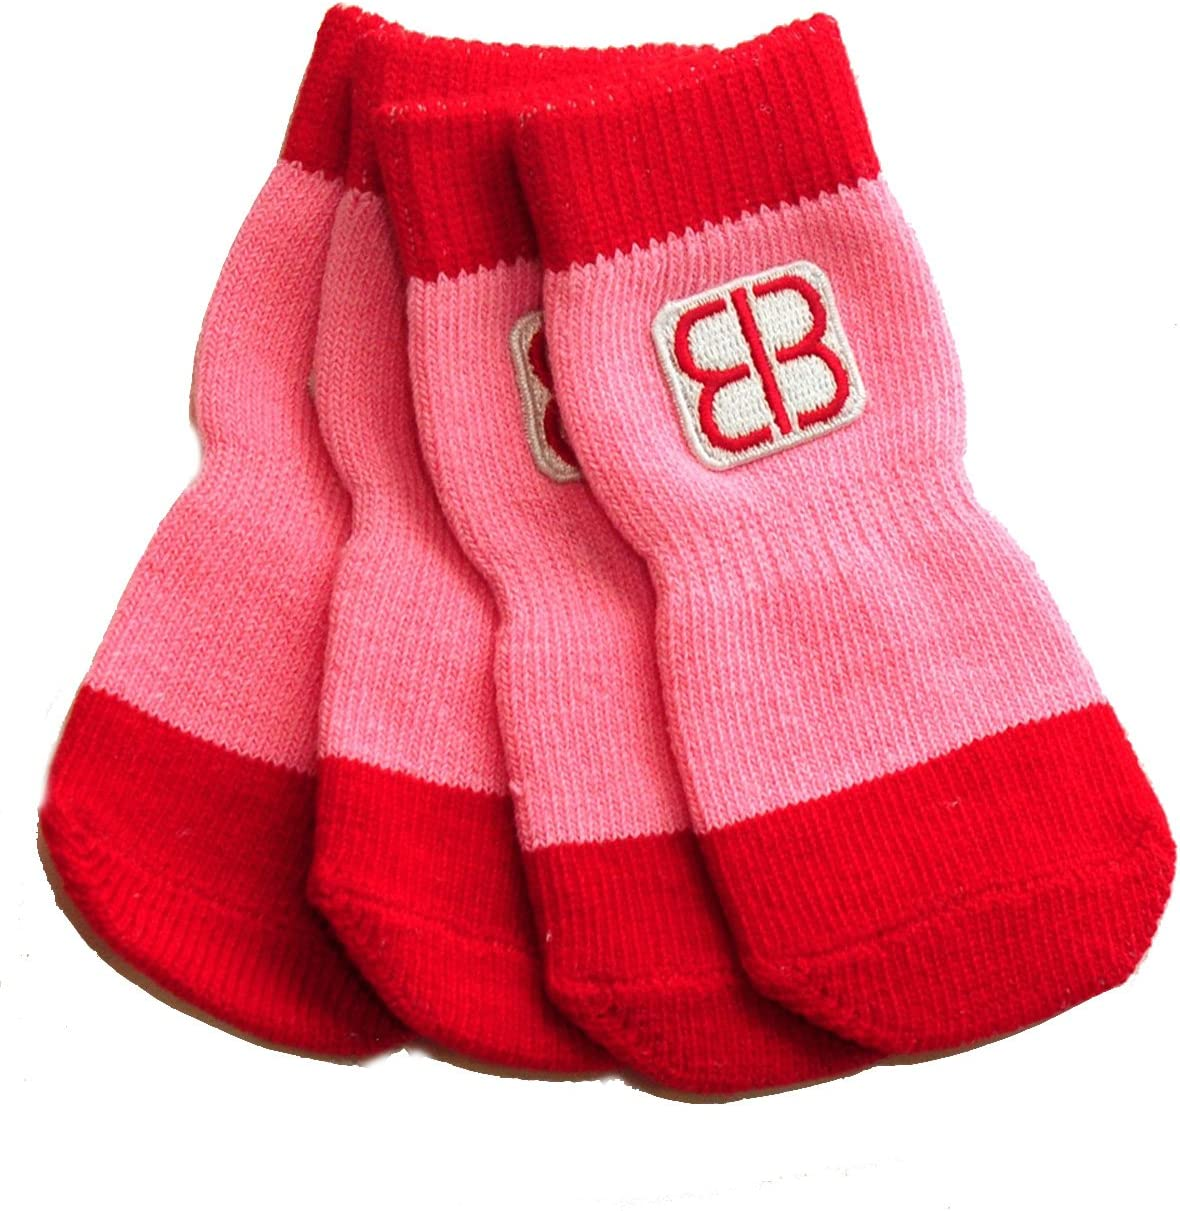 Set of 4 Petego Traction Control Socks for Dogs